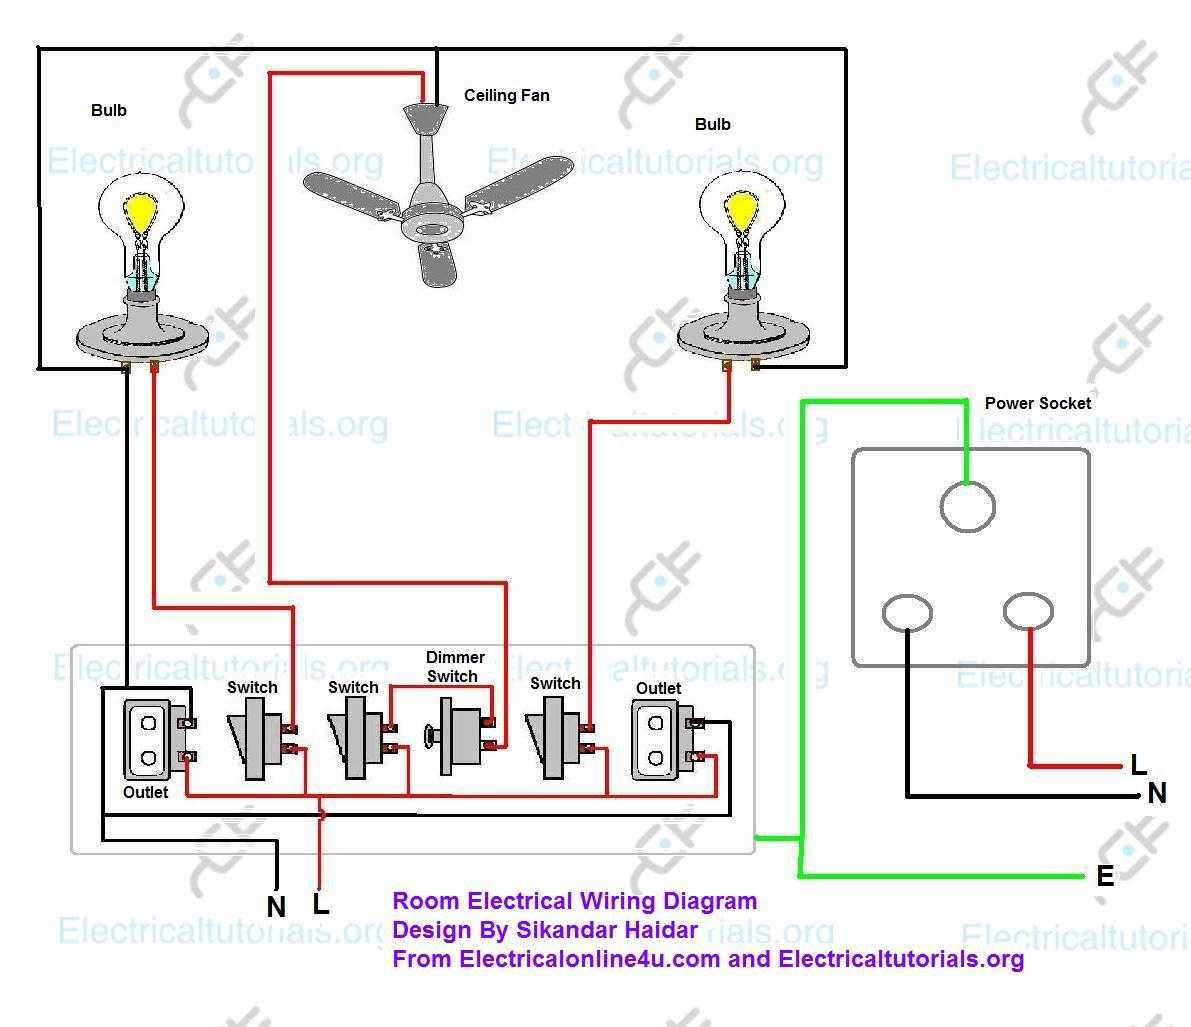 Electric circuit drawing at getdrawings free for personal use 1191x1027 basic house wiring diagram swarovskicordoba Image collections